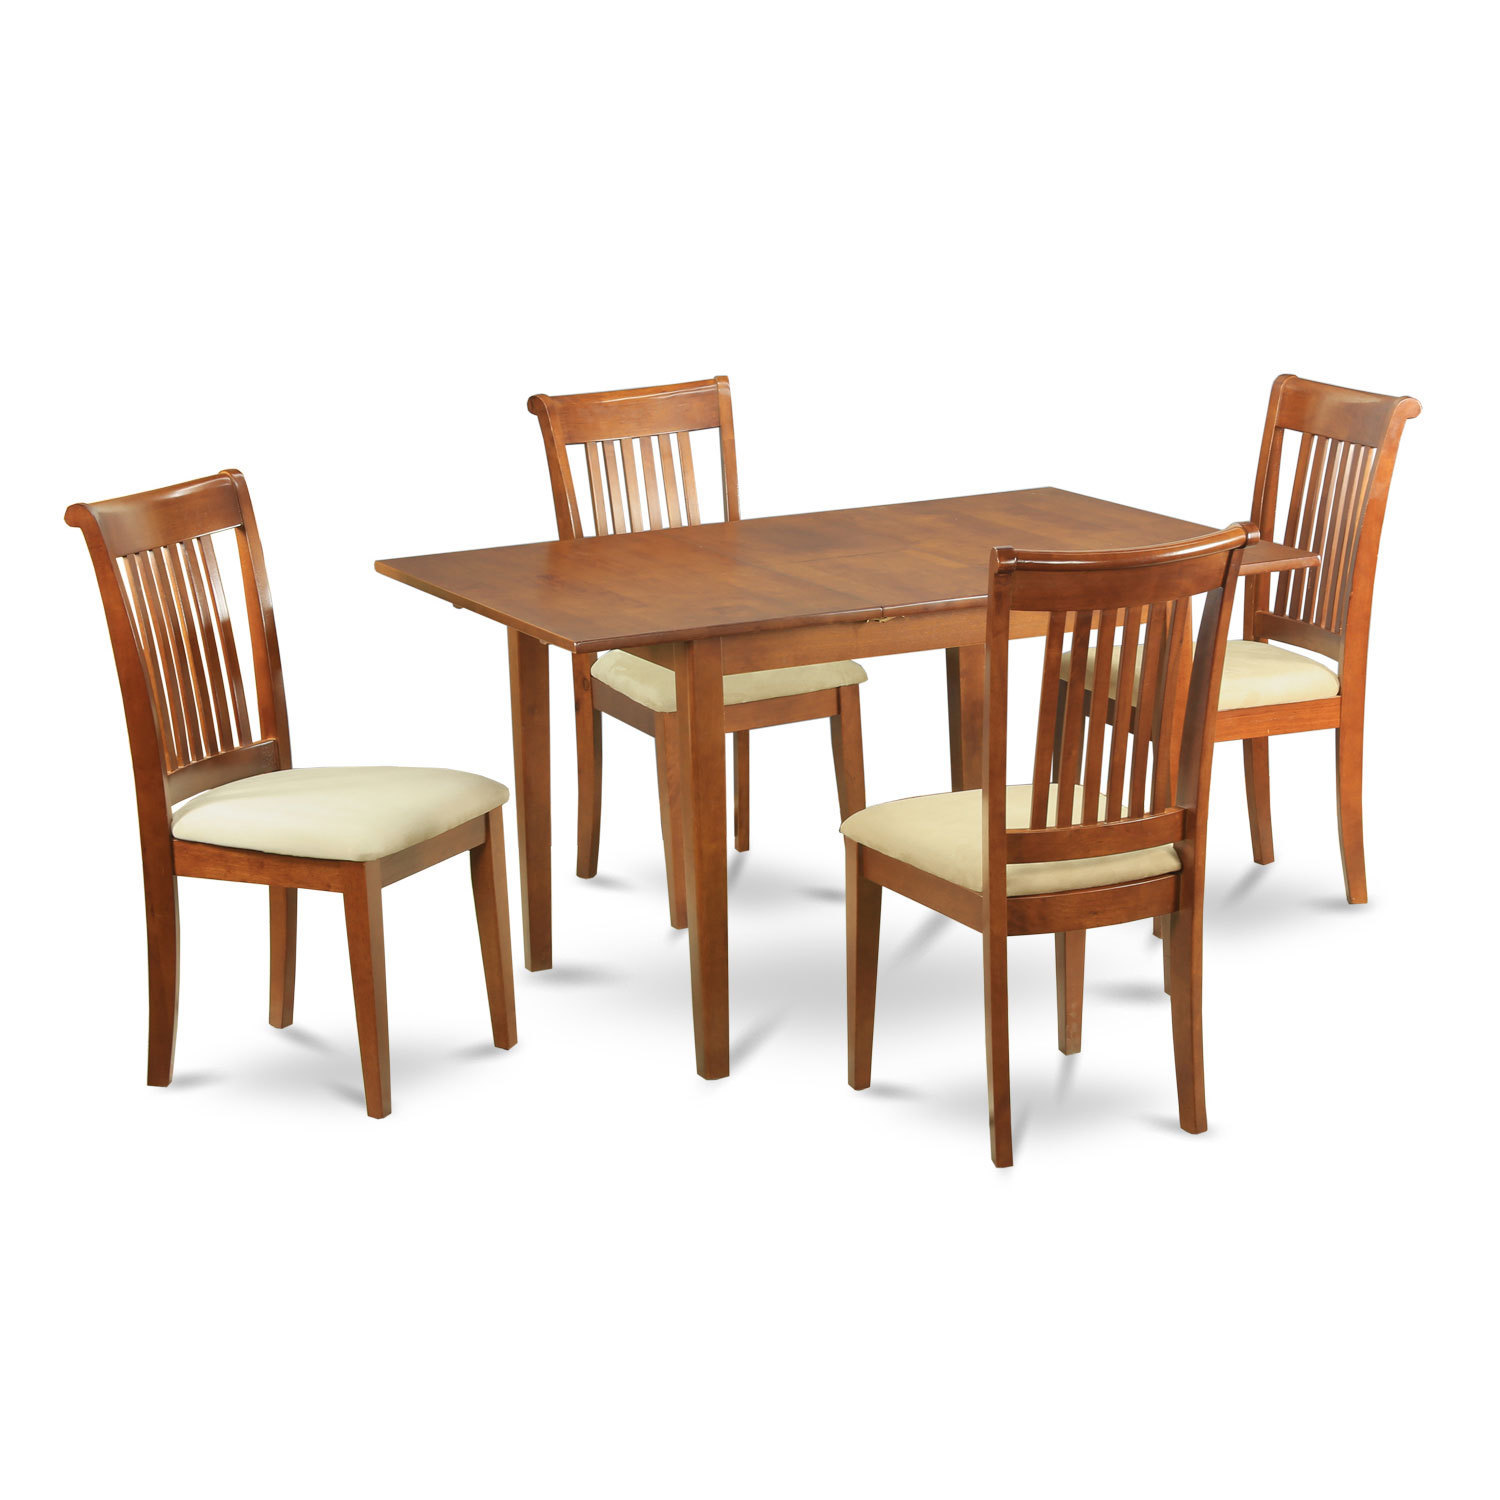 Small dinette set design homesfeed for Small dining table set